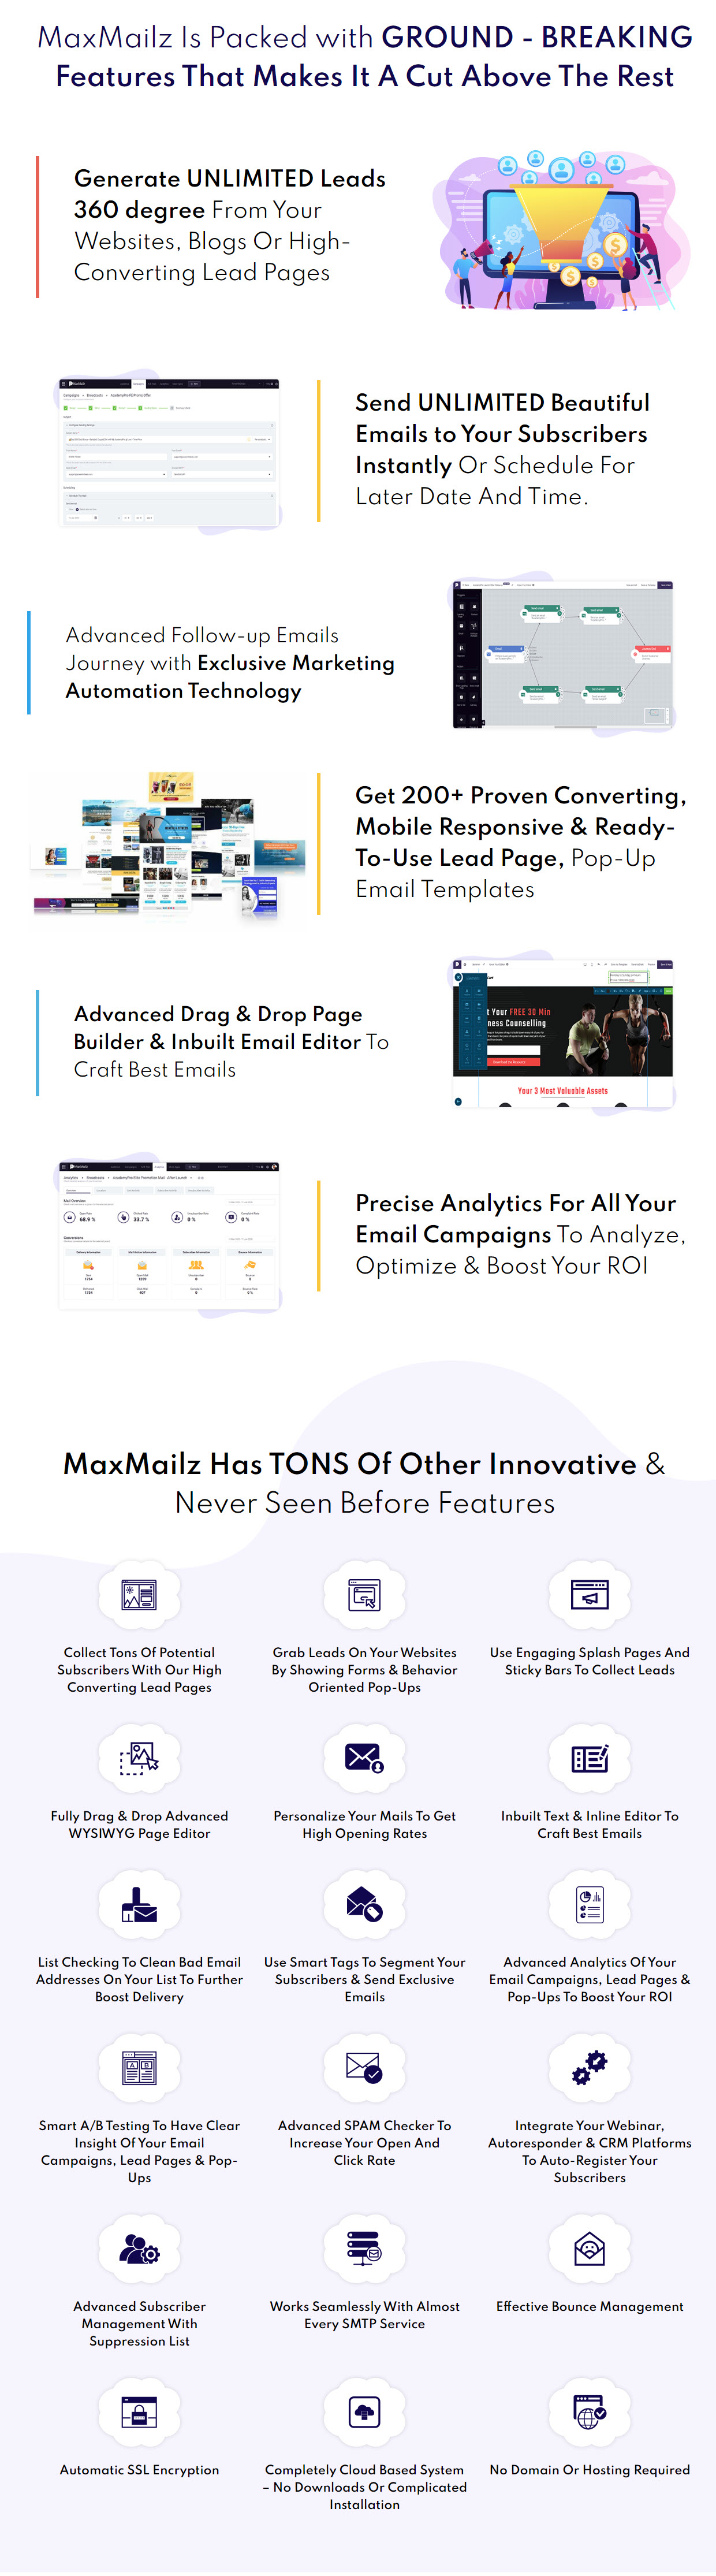 MaxMailz Features